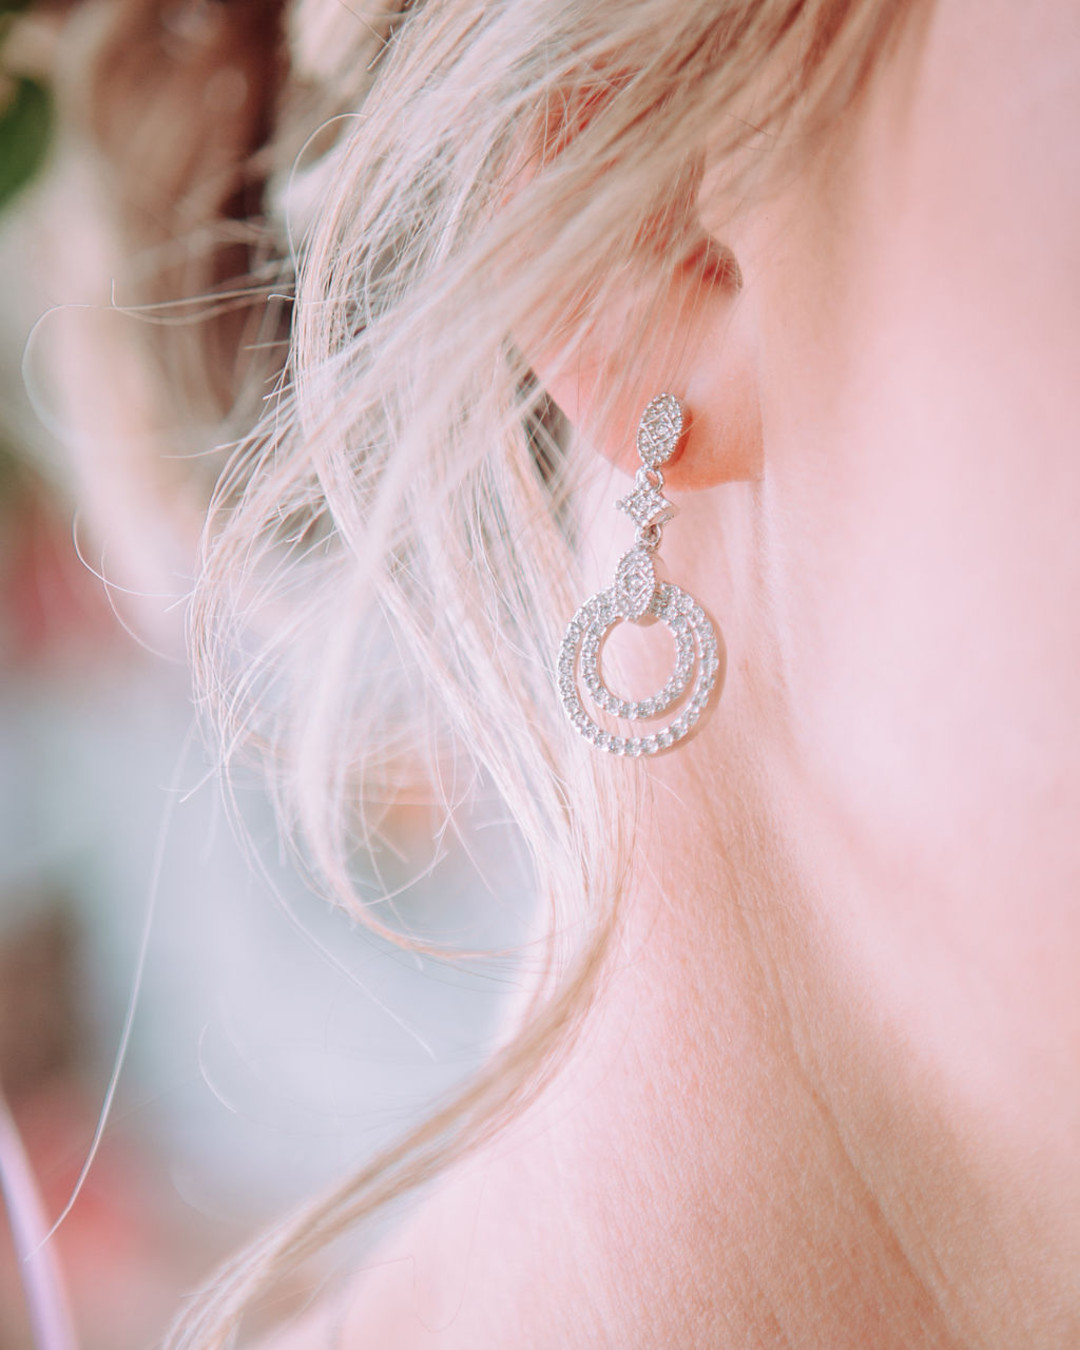 Wedding earrings: Bohemian wedding inspiration captured by Truly Sublime Photography. See more boho wedding ideas on CHItheeWED.com!